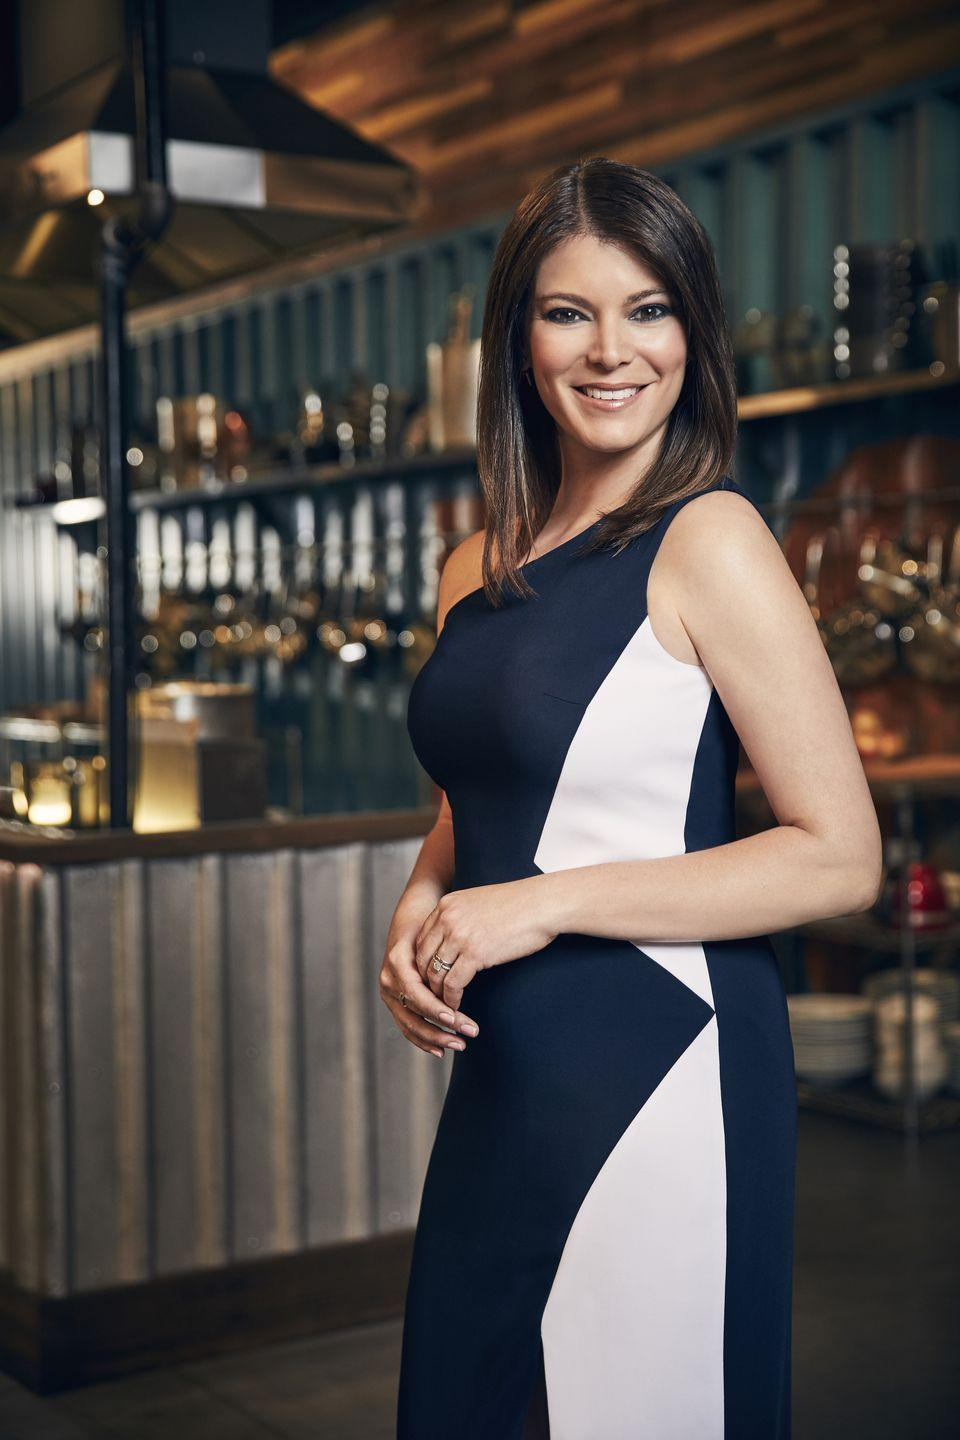 """<p>While viewers only see a few minutes of debate, judge Gail Simmons revealed to <a href=""""https://parade.com/871806/paulettecohn/top-chef-judge-gail-simmons-on-what-really-happens-at-judges-table-whats-always-in-her-fridge-and-healthy-eating-on-the-road/"""" rel=""""nofollow noopener"""" target=""""_blank"""" data-ylk=""""slk:Parade"""" class=""""link rapid-noclick-resp""""><em>Parade</em></a> that Judges' Table takes about four hours. </p>"""